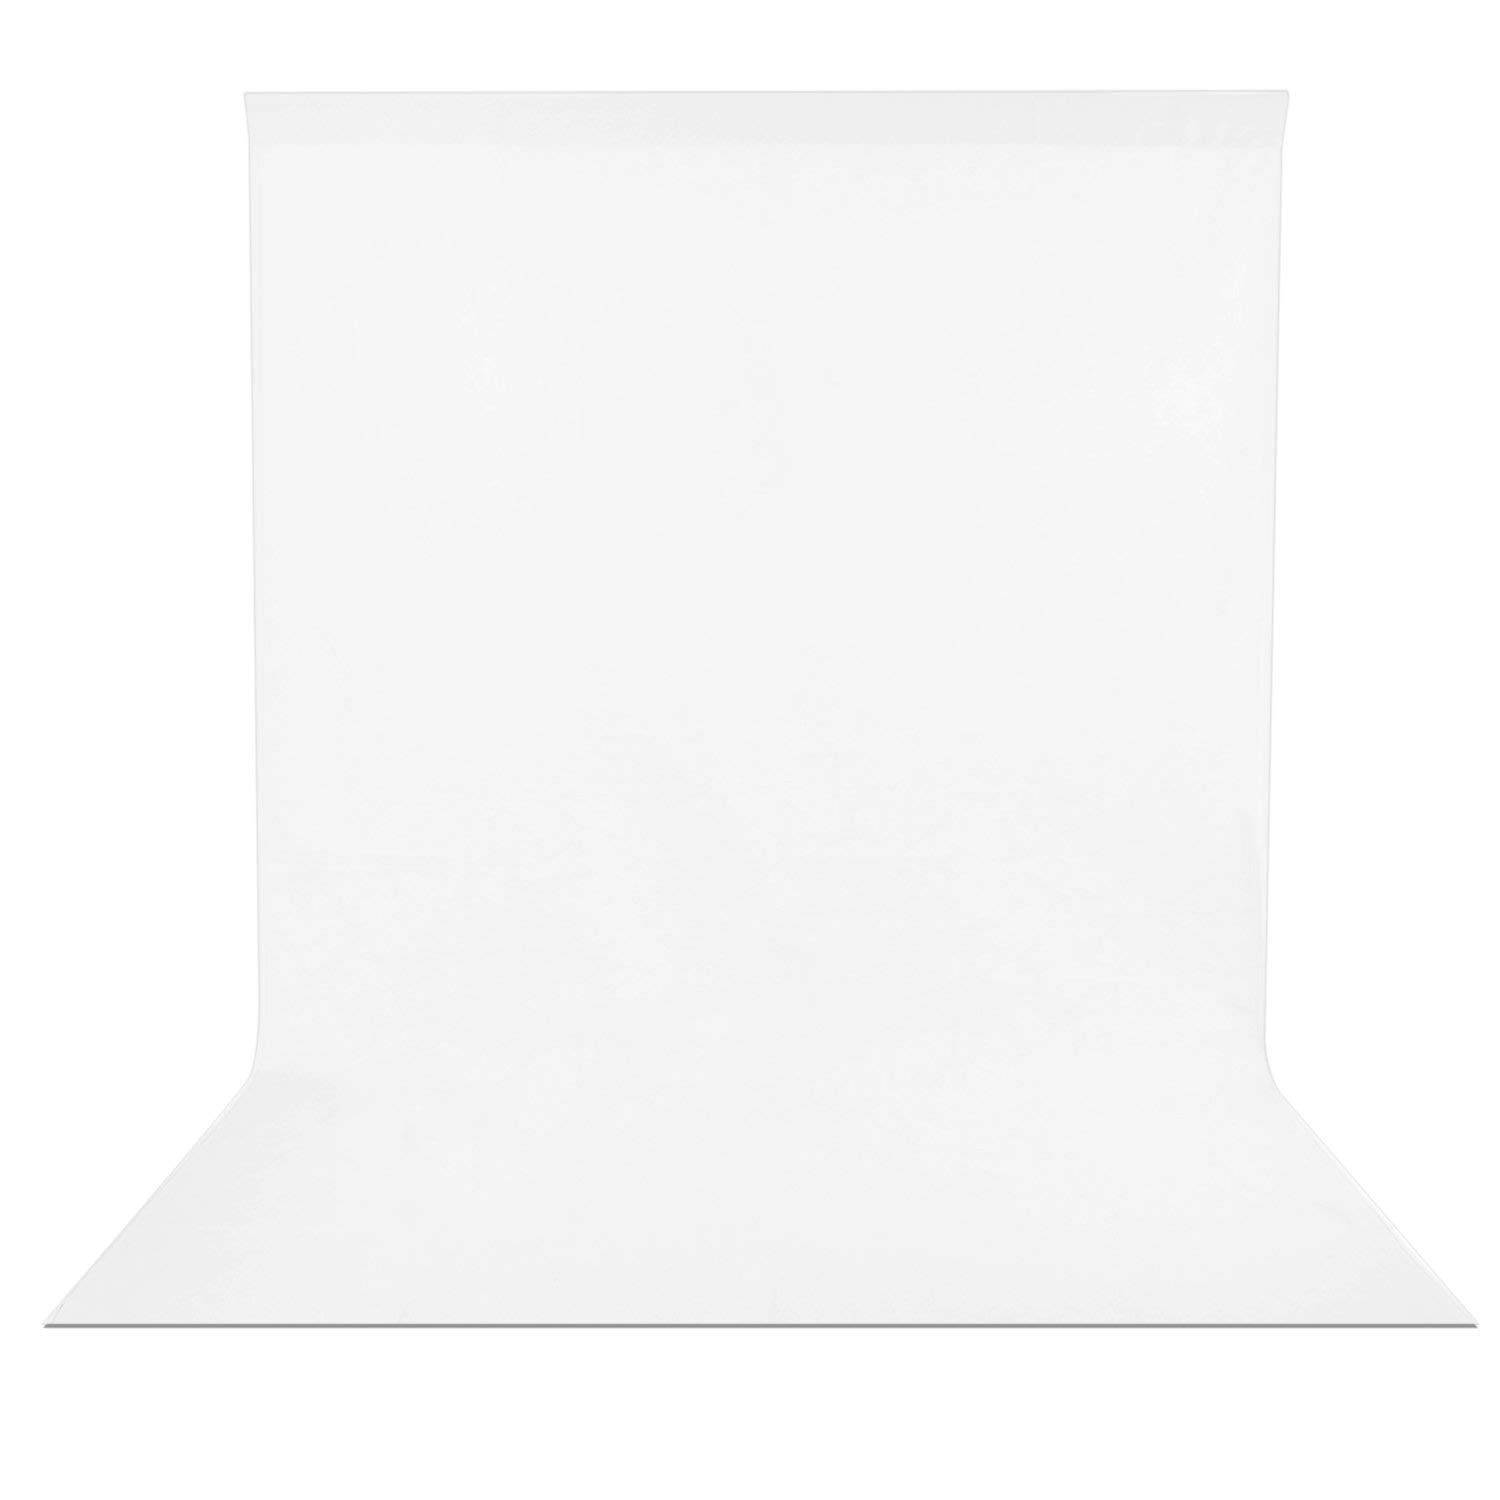 Neewer 10 x 12FT / 3 x 3.6M PRO Photo Studio Fabric Collapsible Backdrop Background for Photography,Video and Televison (Background ONLY) - White by Neewer (Image #4)